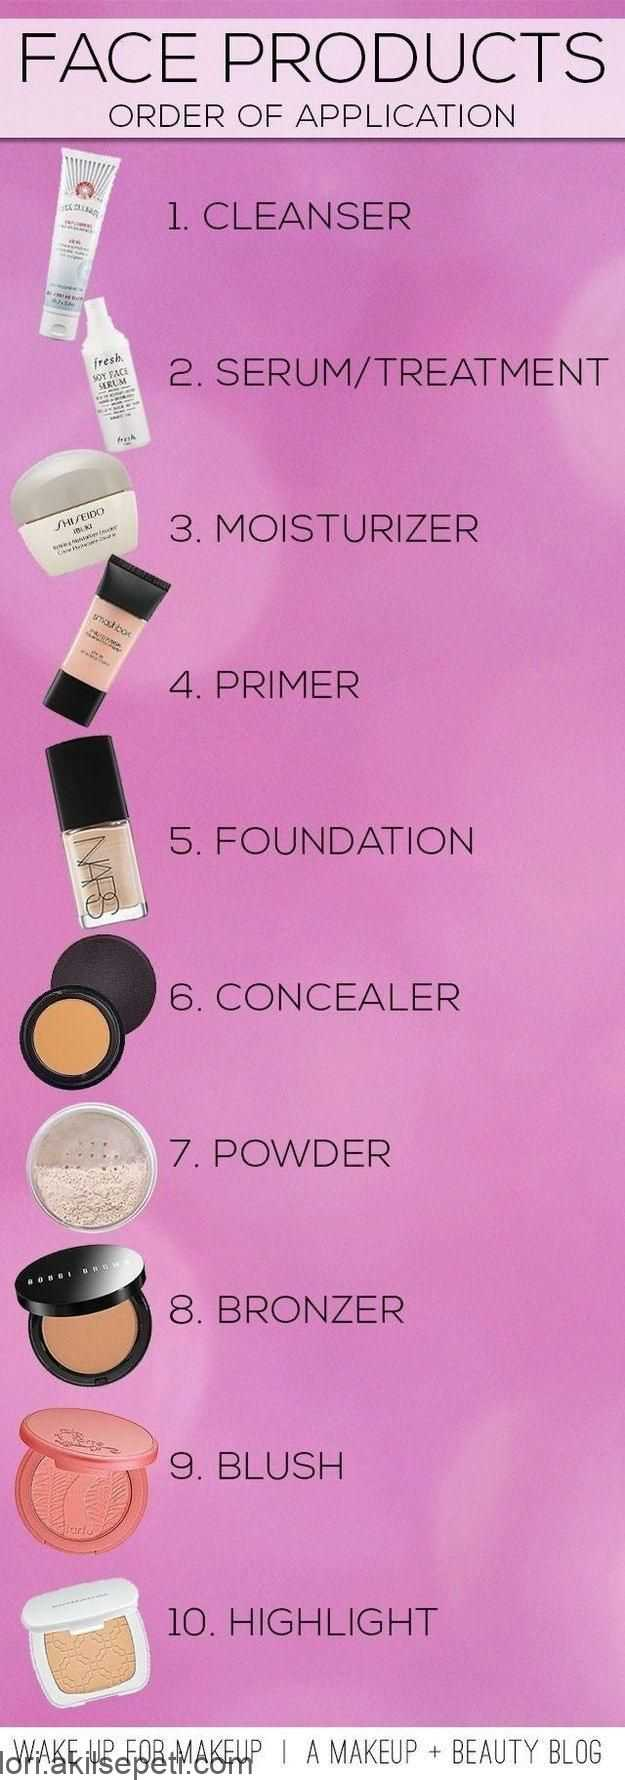 Order Of Application Of Facial Products